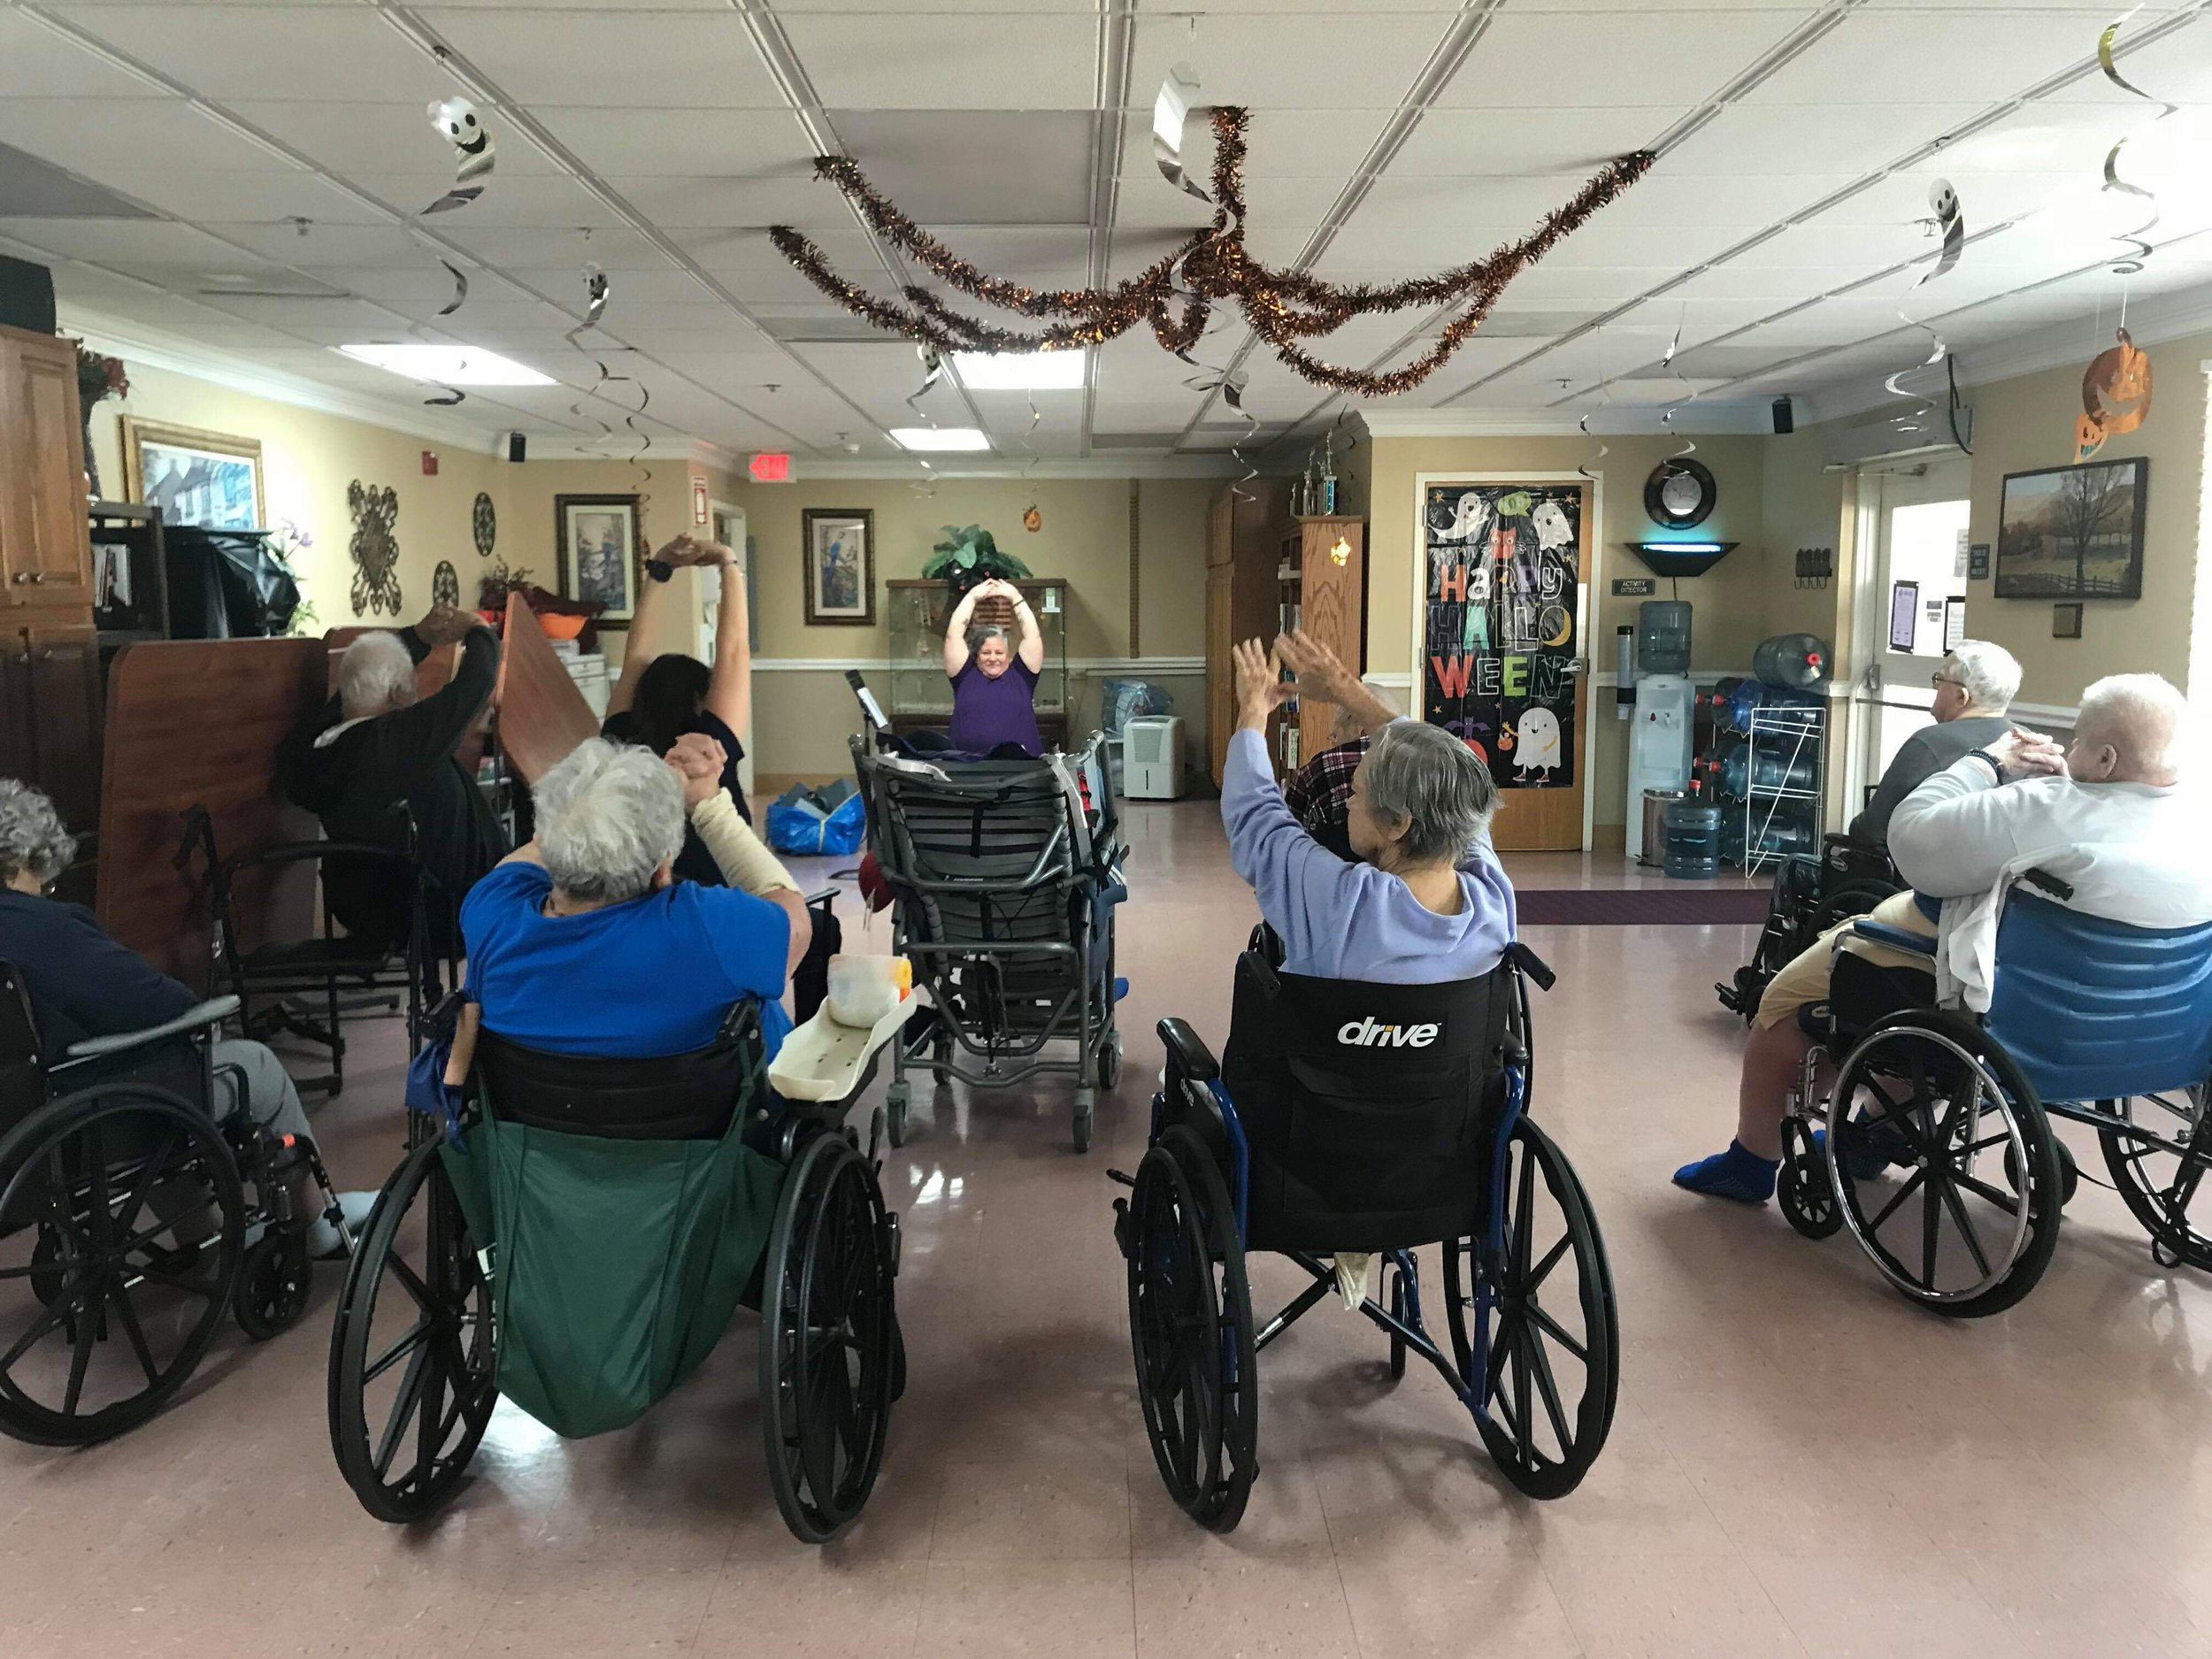 Adaptive & Wheelchair yoga - Bring gentle, adaptive and wheelchair yoga for seniors and differently-abled bodies to your location.